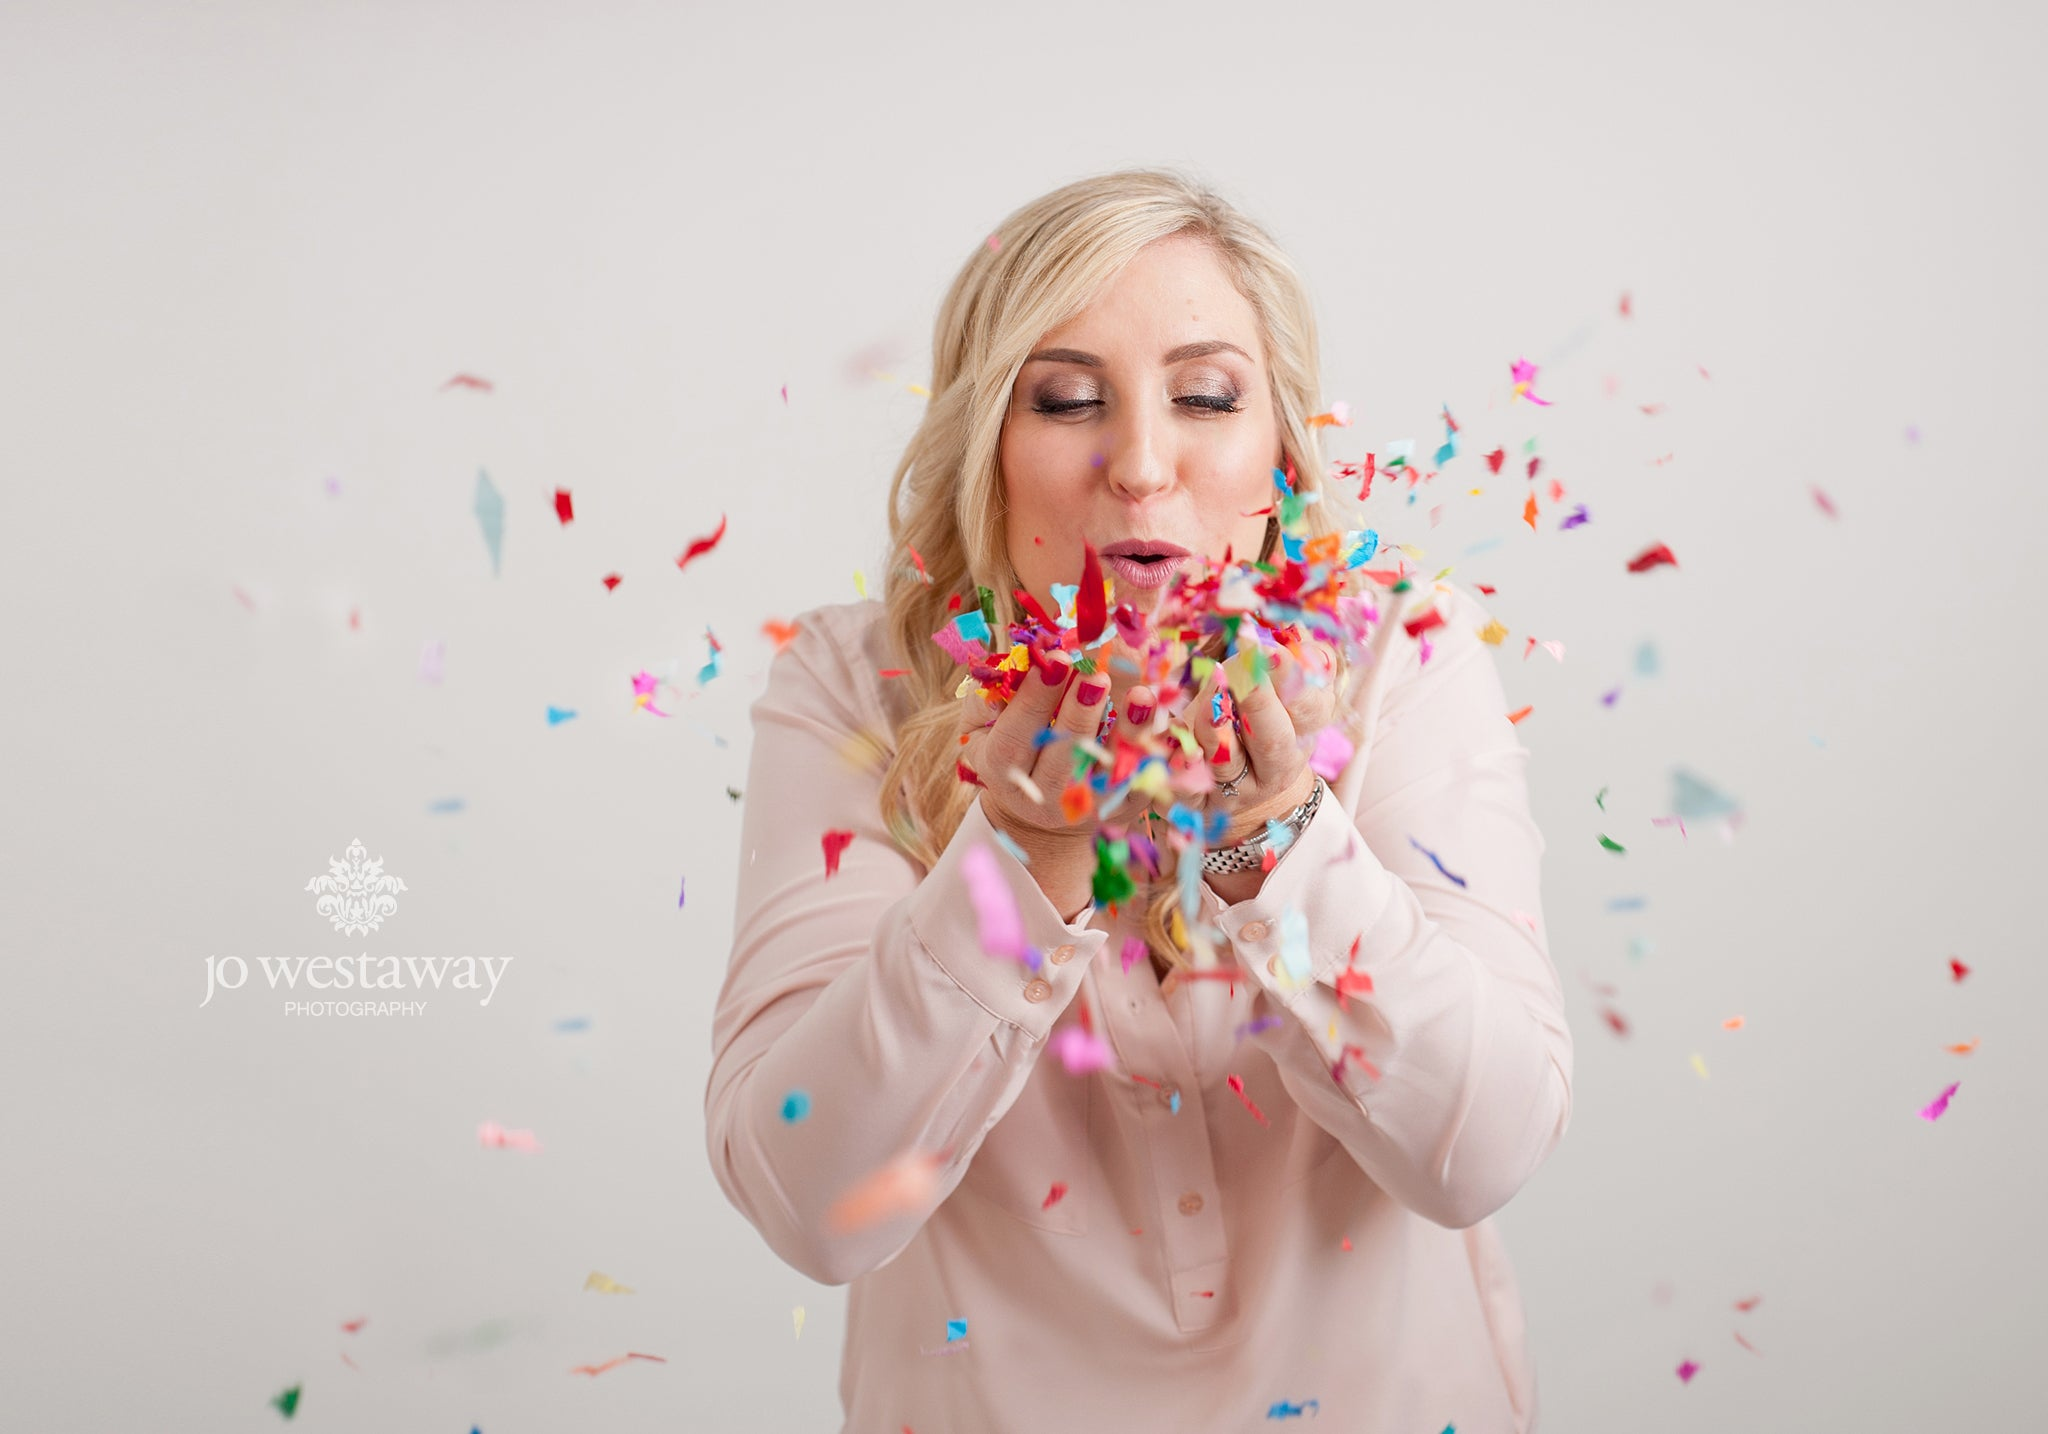 Interesting personal brand portraits, headshots and business photos - confetti